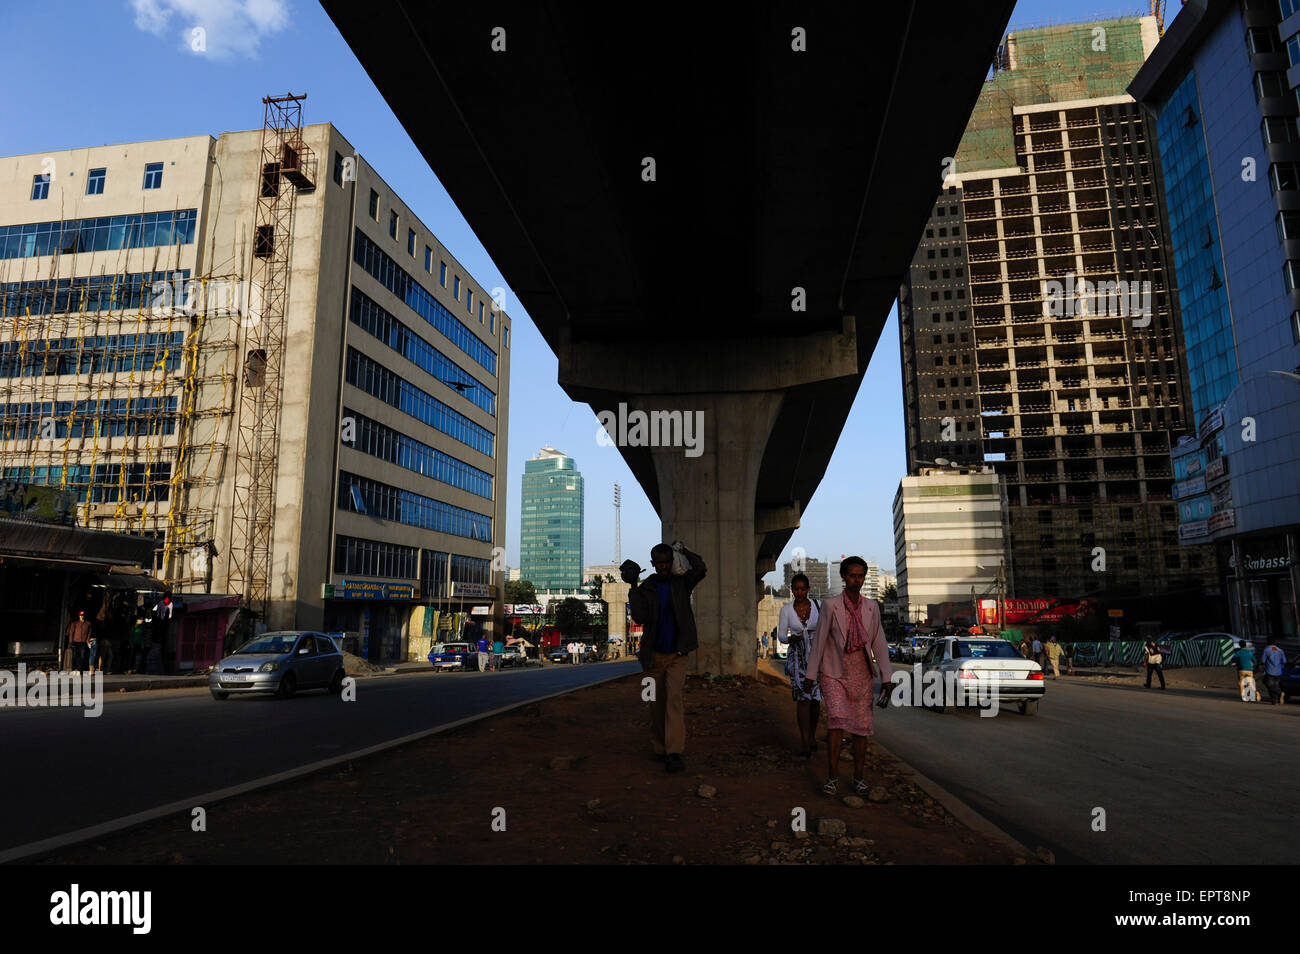 ETHIOPIA, Addis Ababa, construction of light rail network by